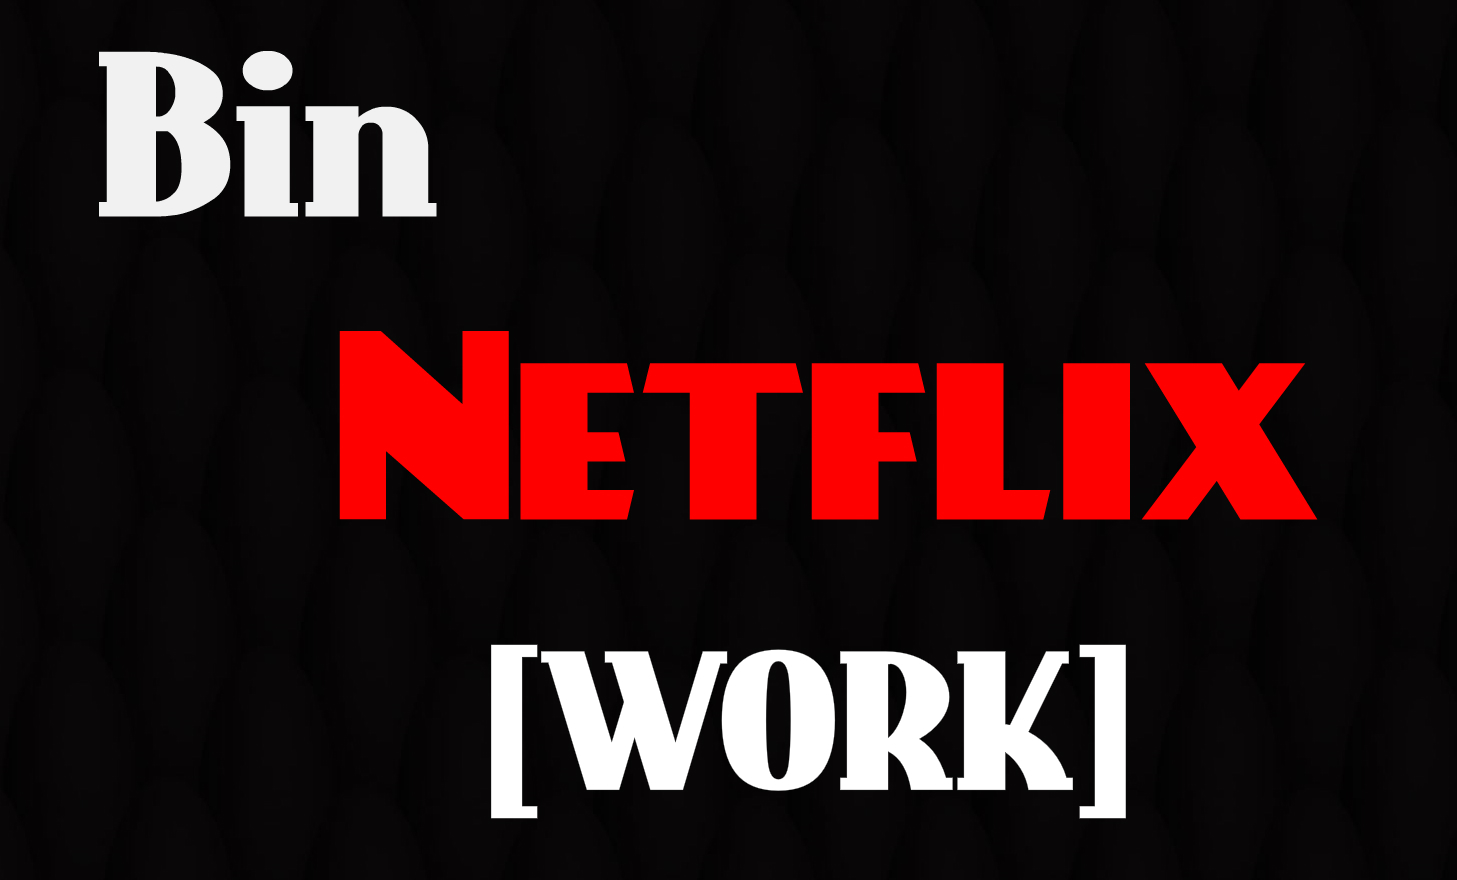 Netflix Accounts Premium 2018-2019 (Bin Methode) - AnonyBosse